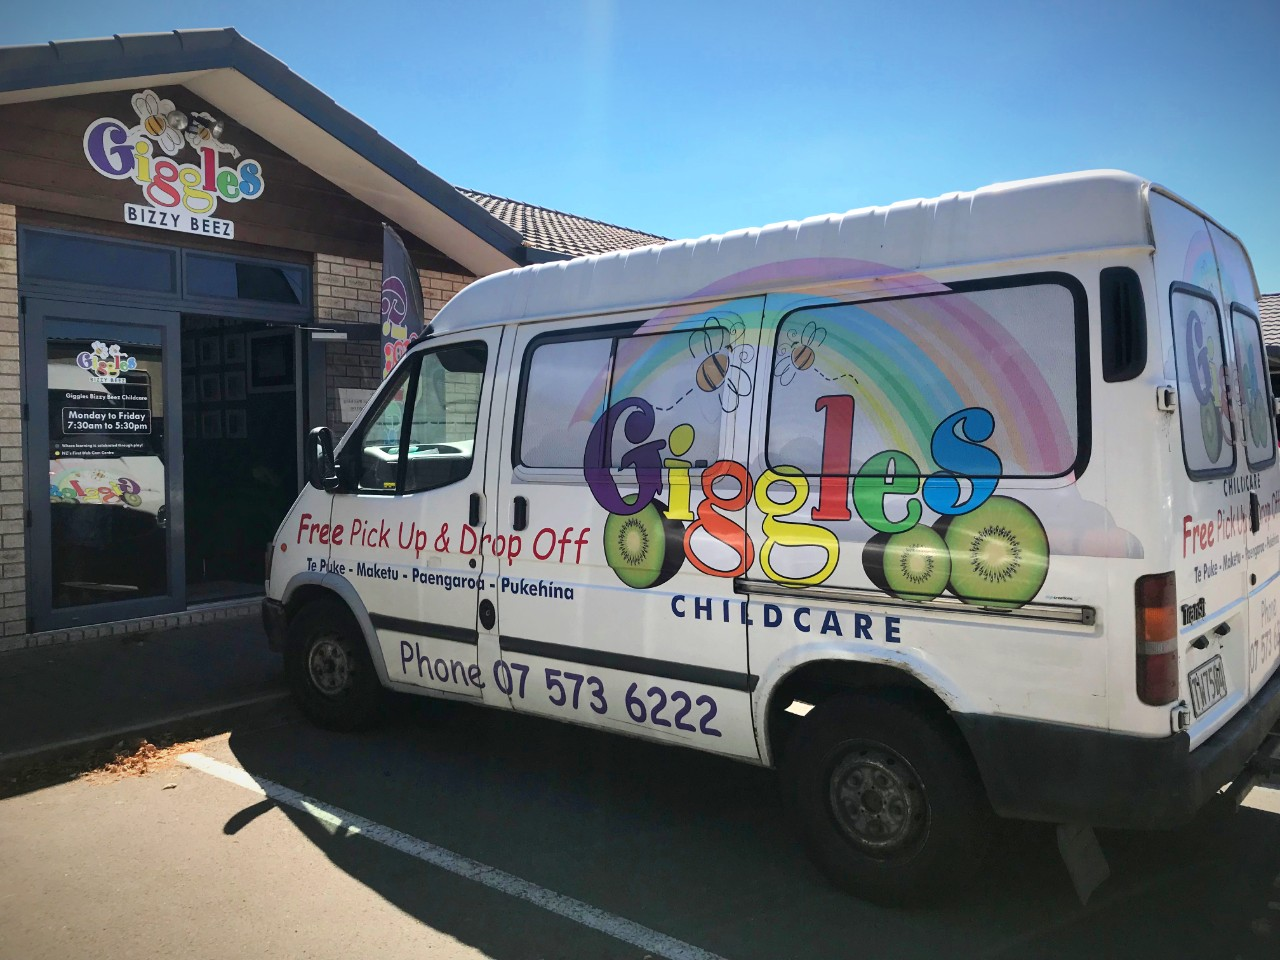 Giggles van service is for picking up and dropping children, enrolled at Giggles. Another great learning adventure with friends in the van.